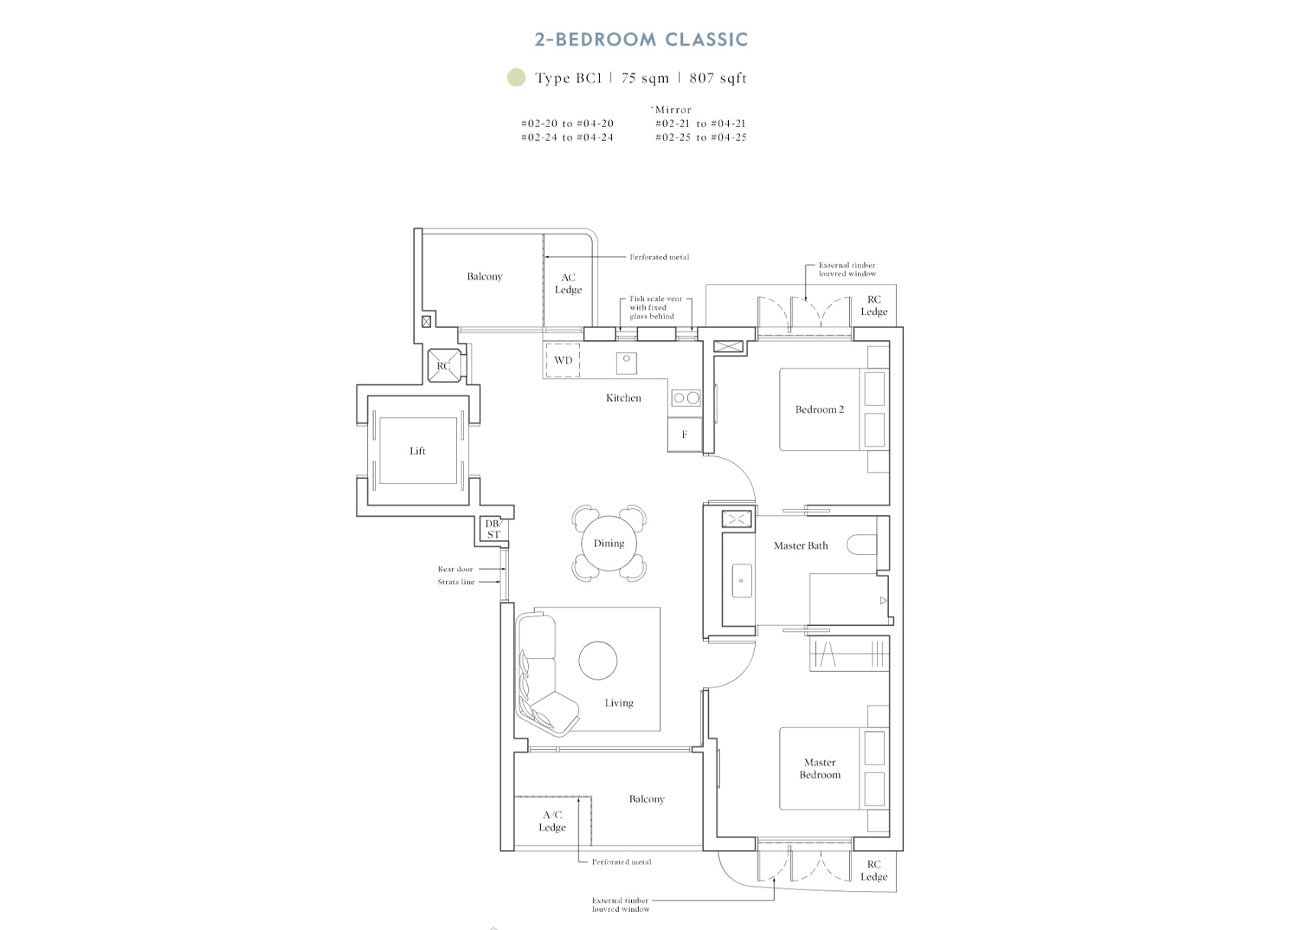 Heritage Collection - 2 Bedroom Classic, BC1